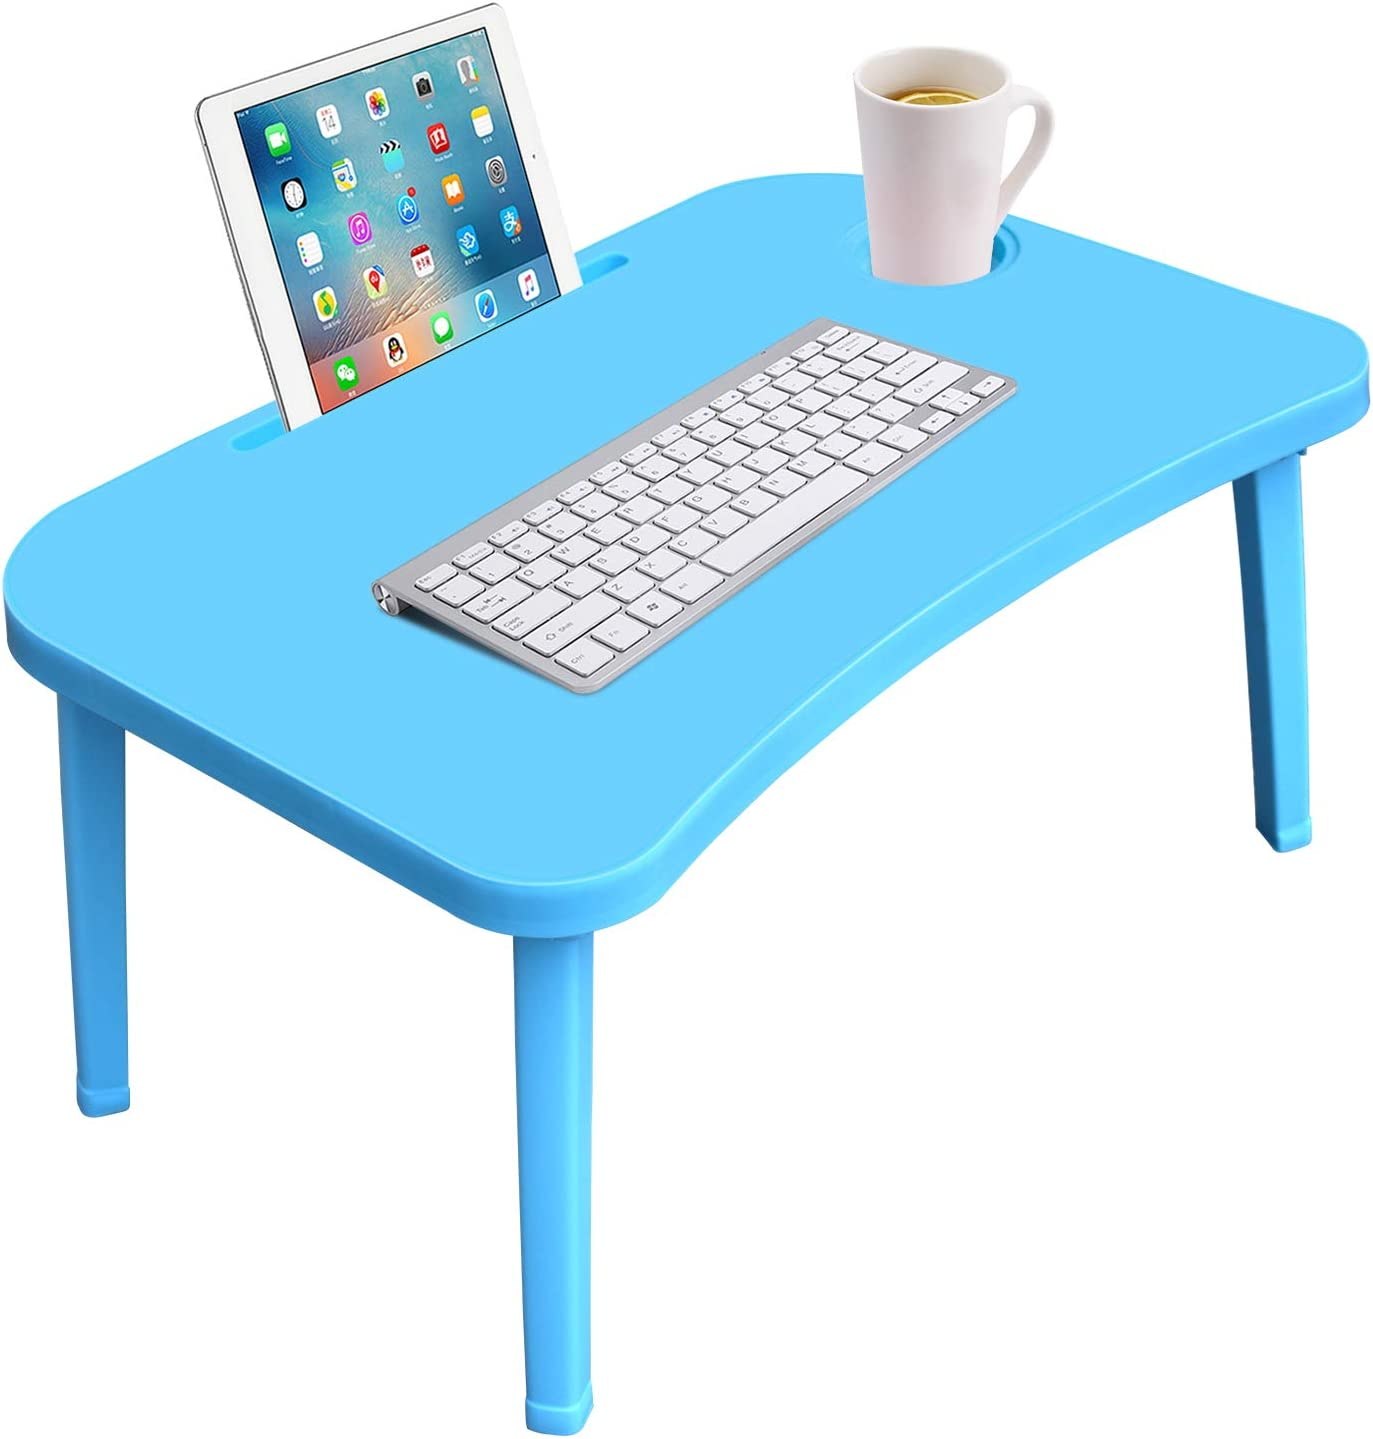 Folding Laptop Bed Tray Table, Large Painting Table with Phone Tablet Holder and Cup Holder, Hmfur Portable Standing Table with Foldable Legs for Bed Sofa Couch-Blue